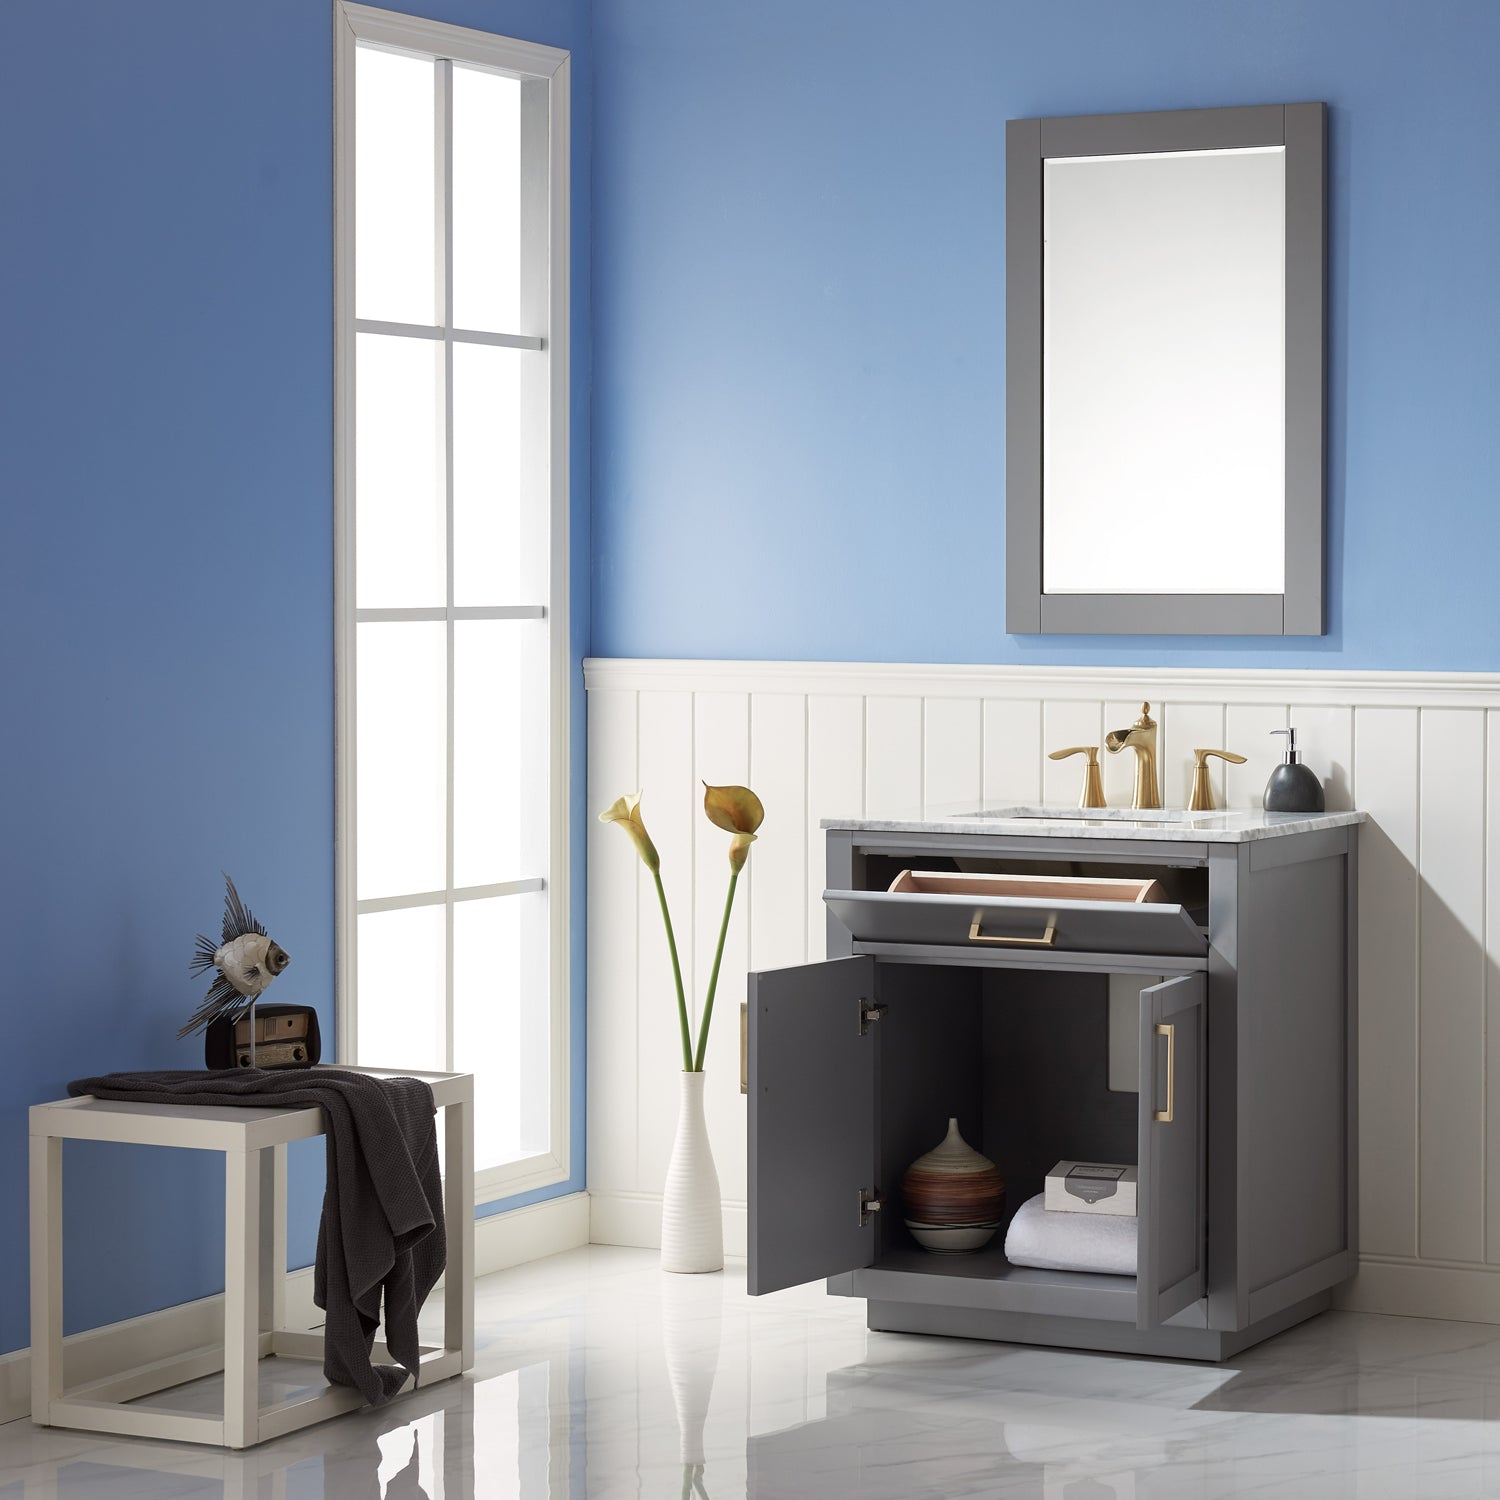 "Ivy 30"" Single Bathroom Vanity Set in Gray and Carrara White Marble Countertop with Mirror"